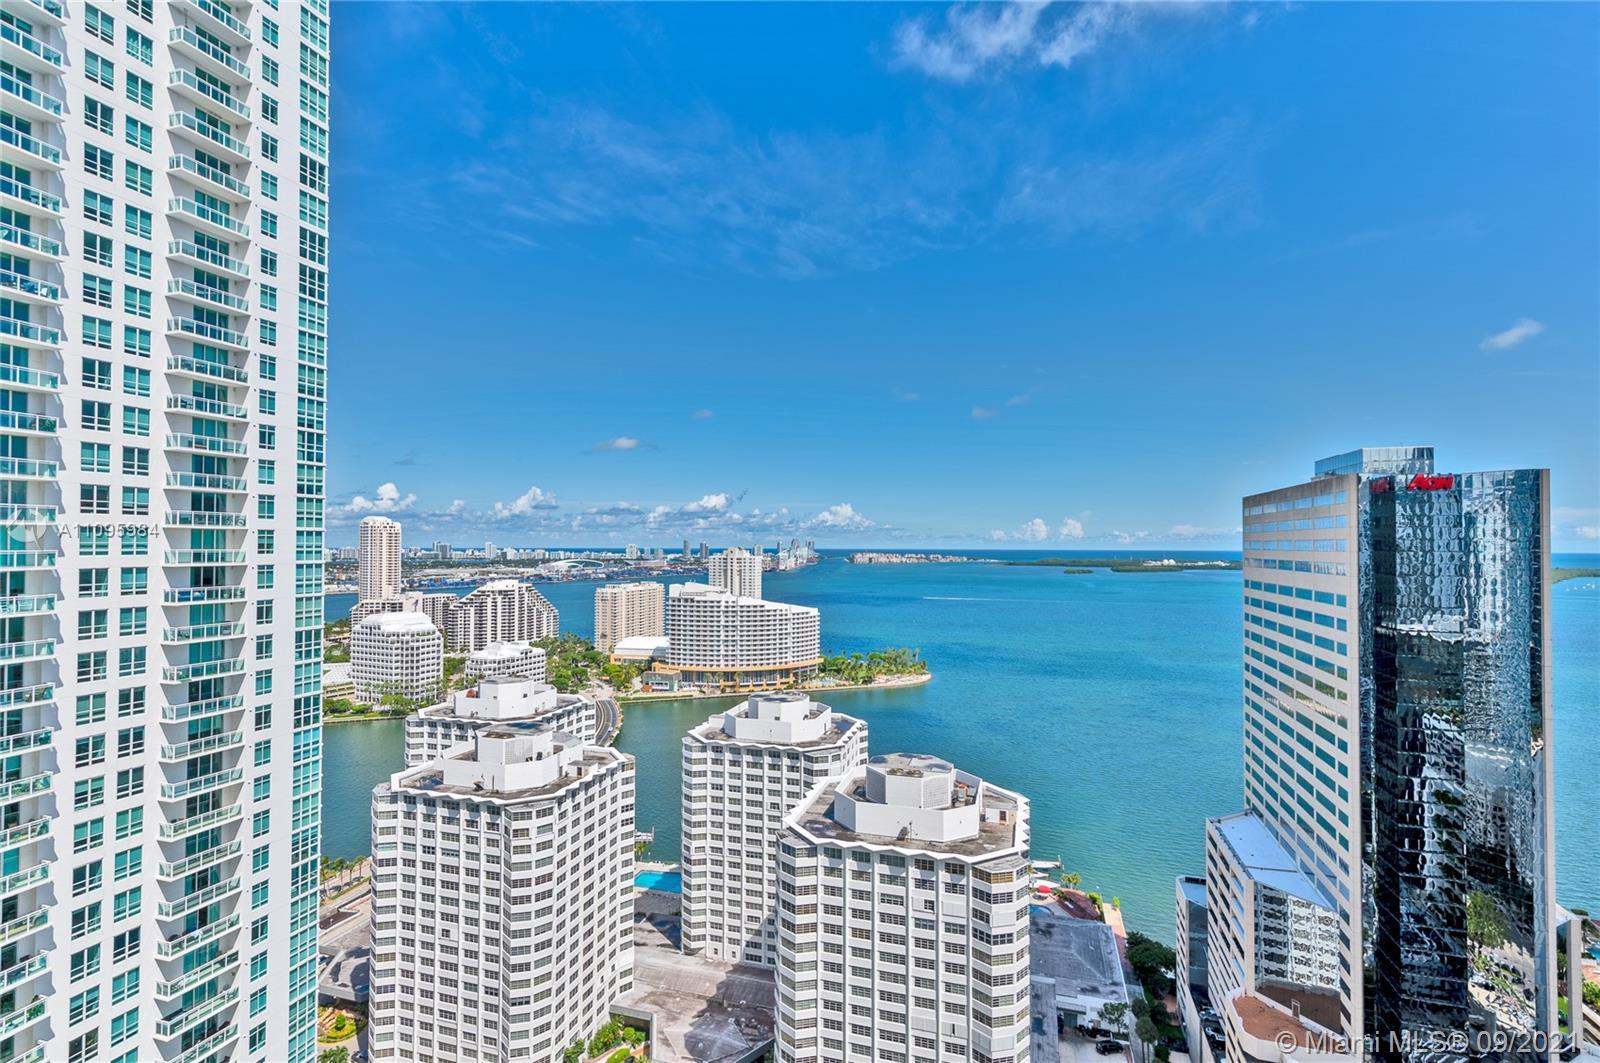 AMAZING UNIT WITH THE BEST VIEWS IN THE BUILDING. 1BD/1BA, PORCELAIN FLOORS, GRANITE COUNTERTOPS, WO